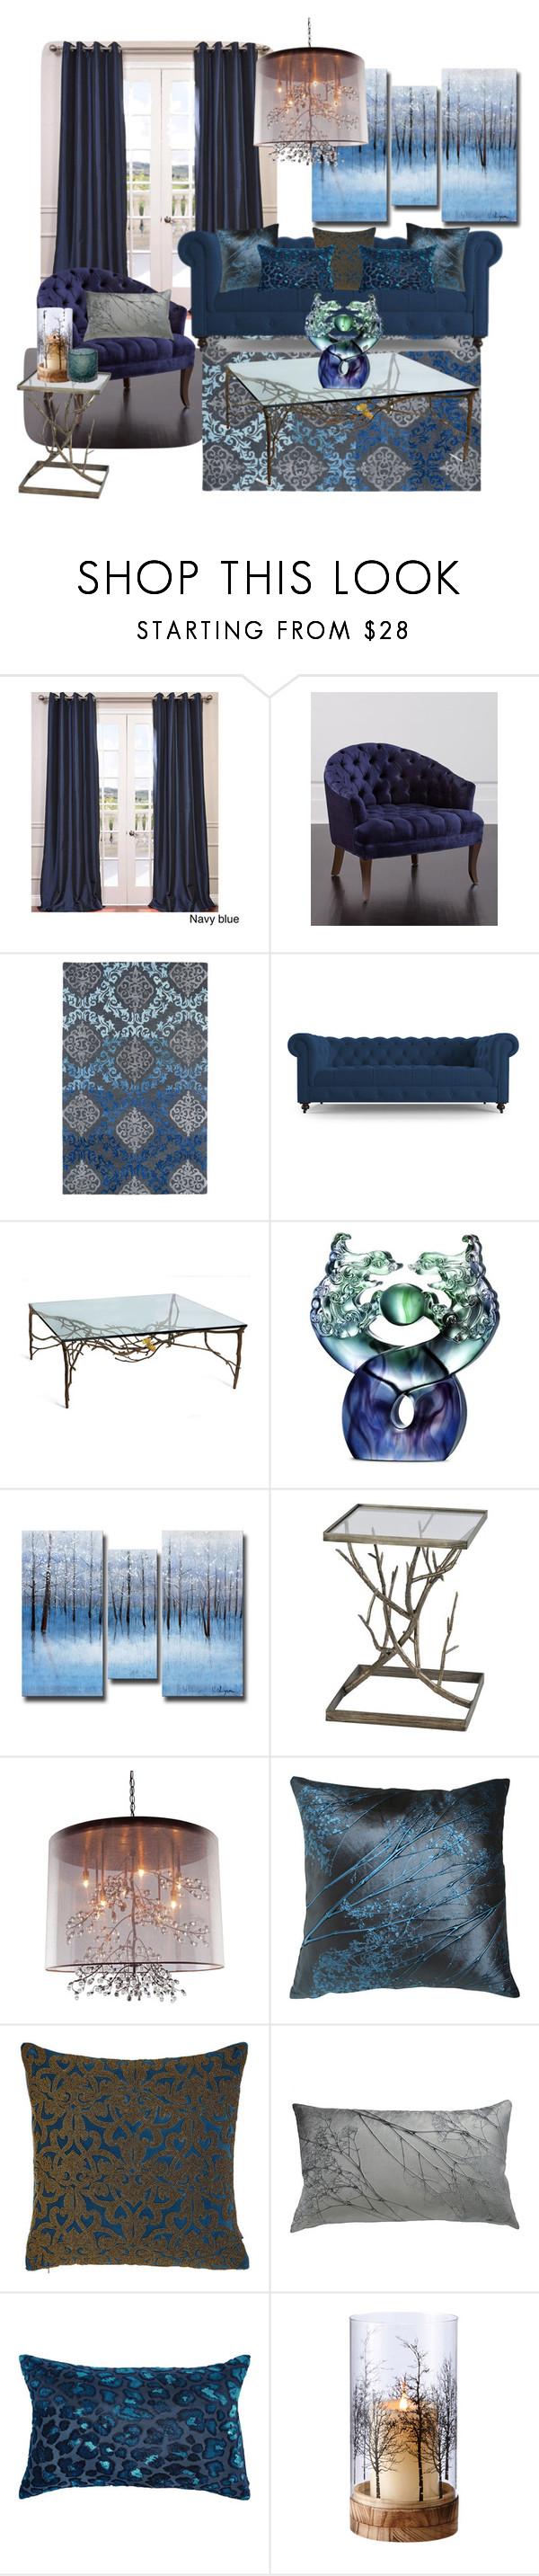 """""""Blue Branches"""" by amanda-lombardi ❤ liked on Polyvore featuring interior, interiors, interior design, home, home decor, interior decorating, EFF, Haute House, Joybird Furniture and Michael Aram"""